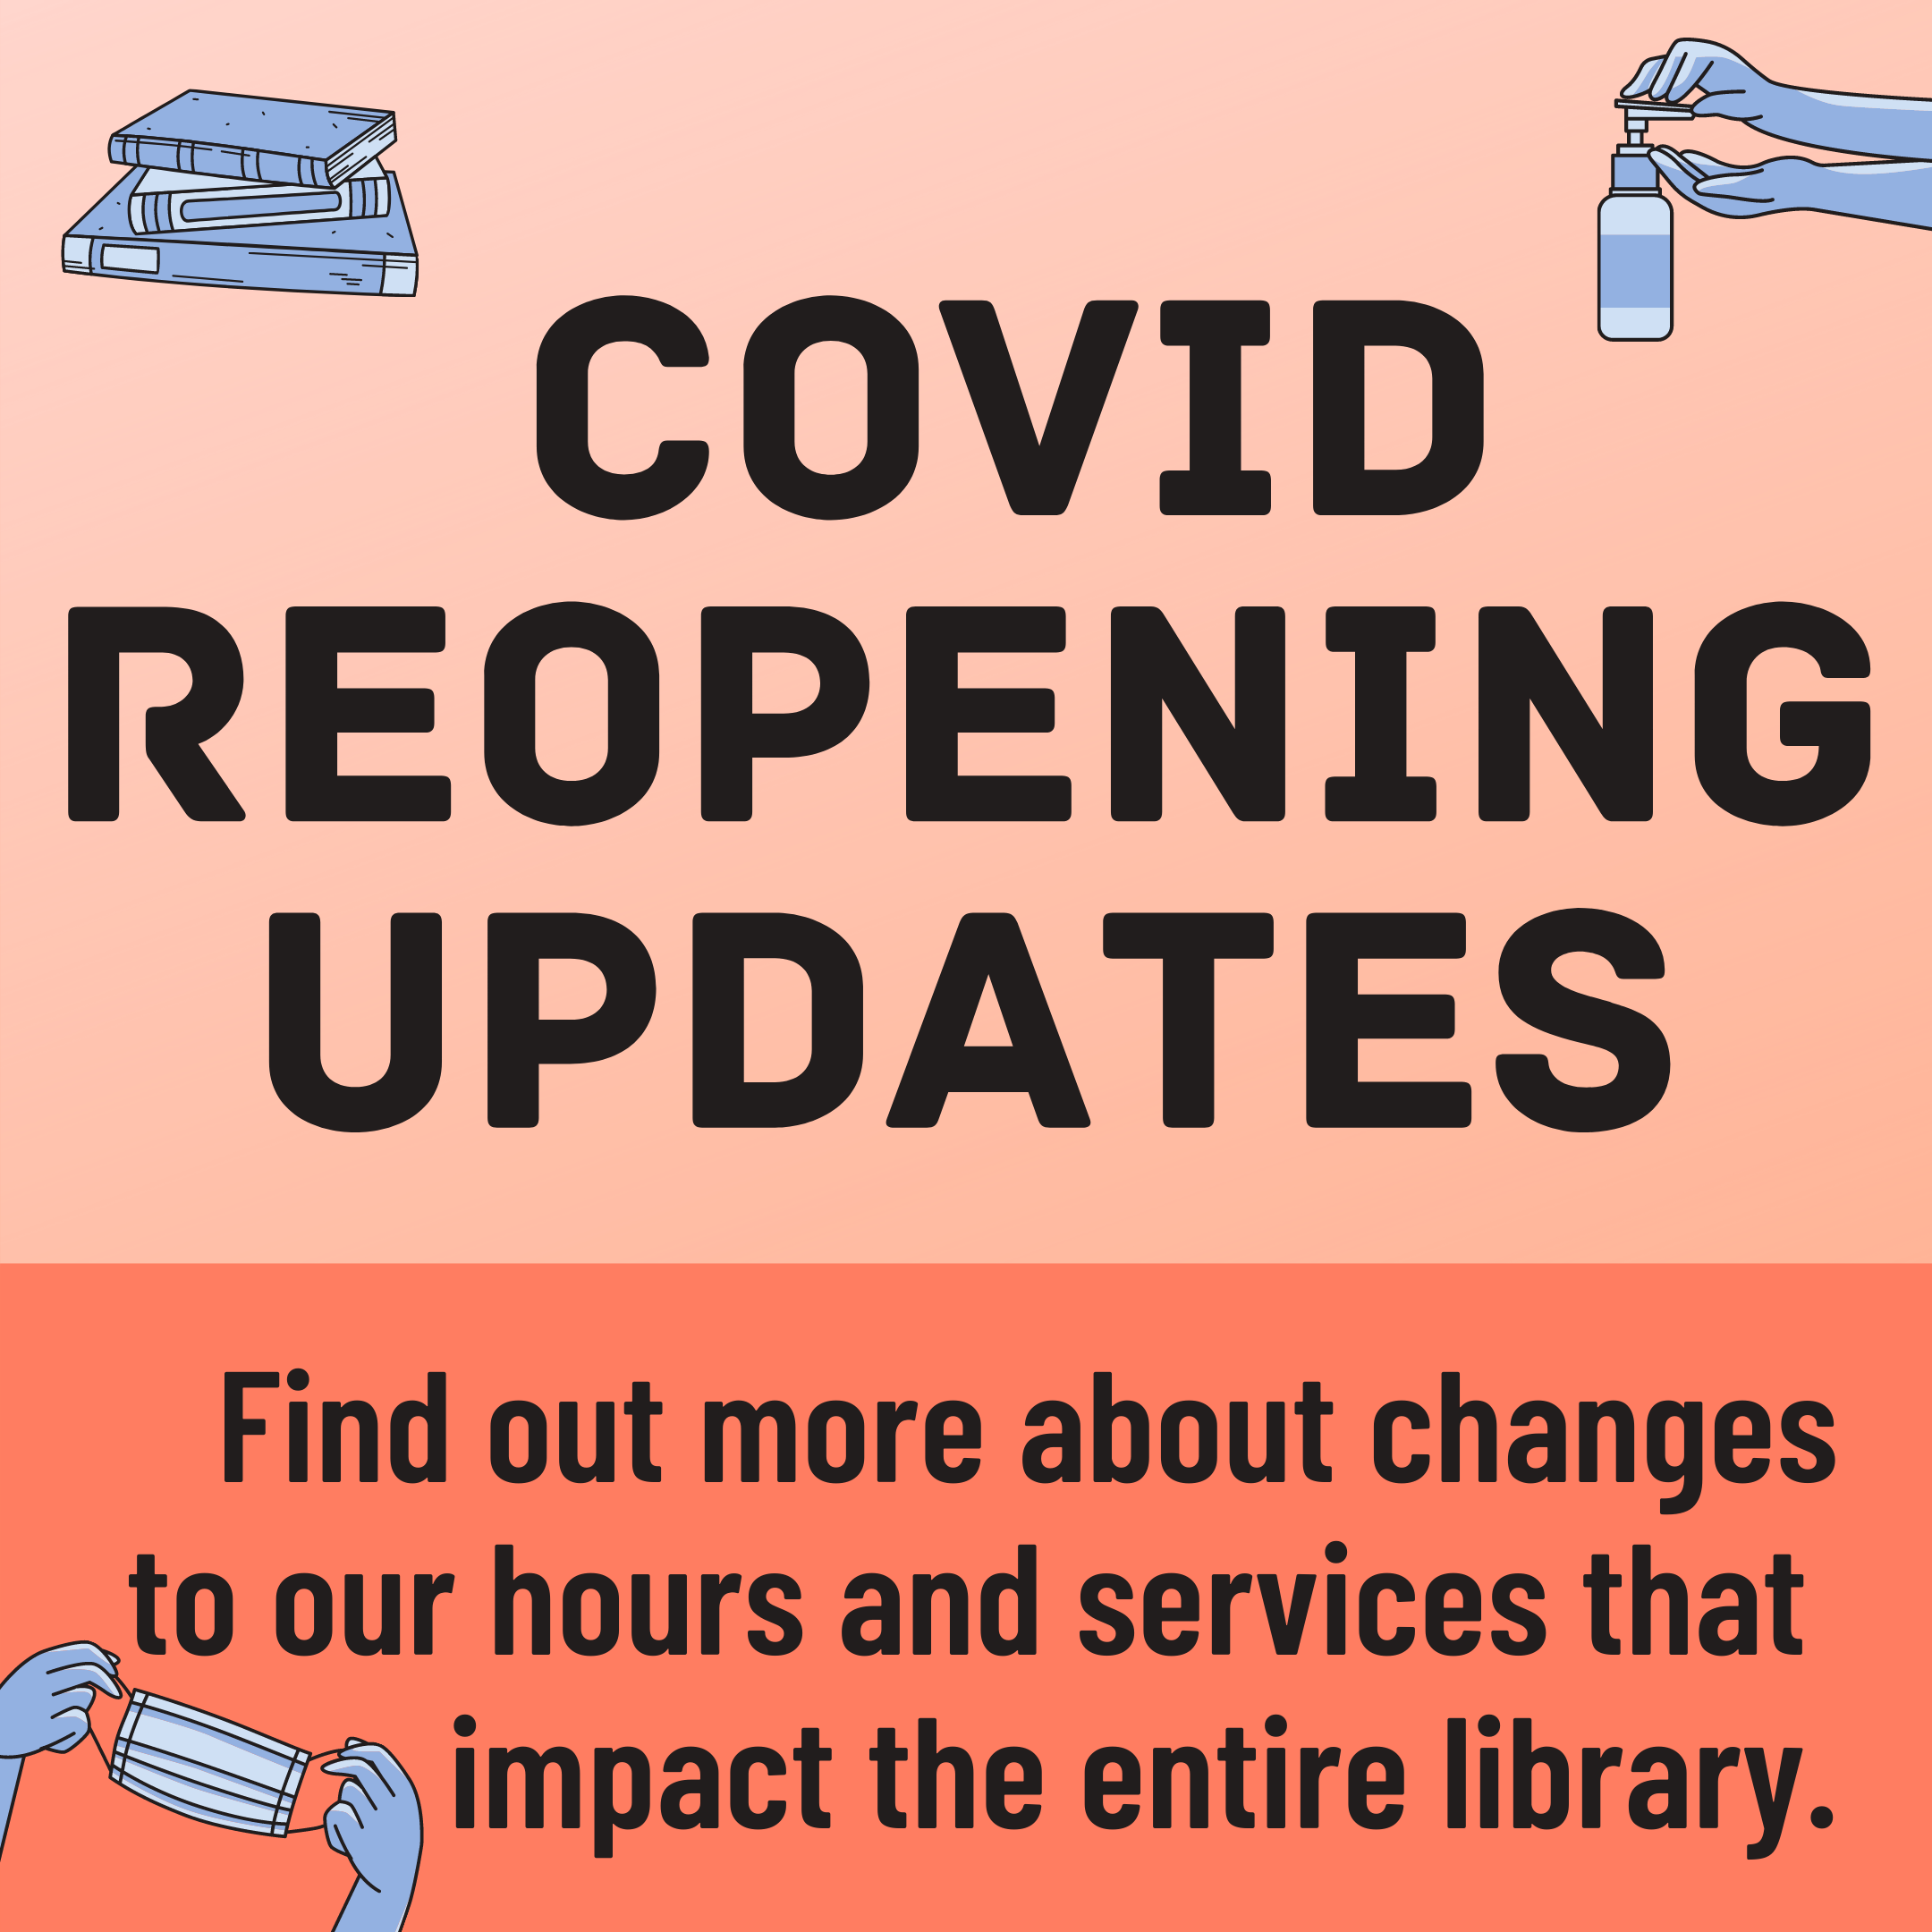 COVID Reopening Updates. Find out more about changes to our hours and services that impact the entire library.